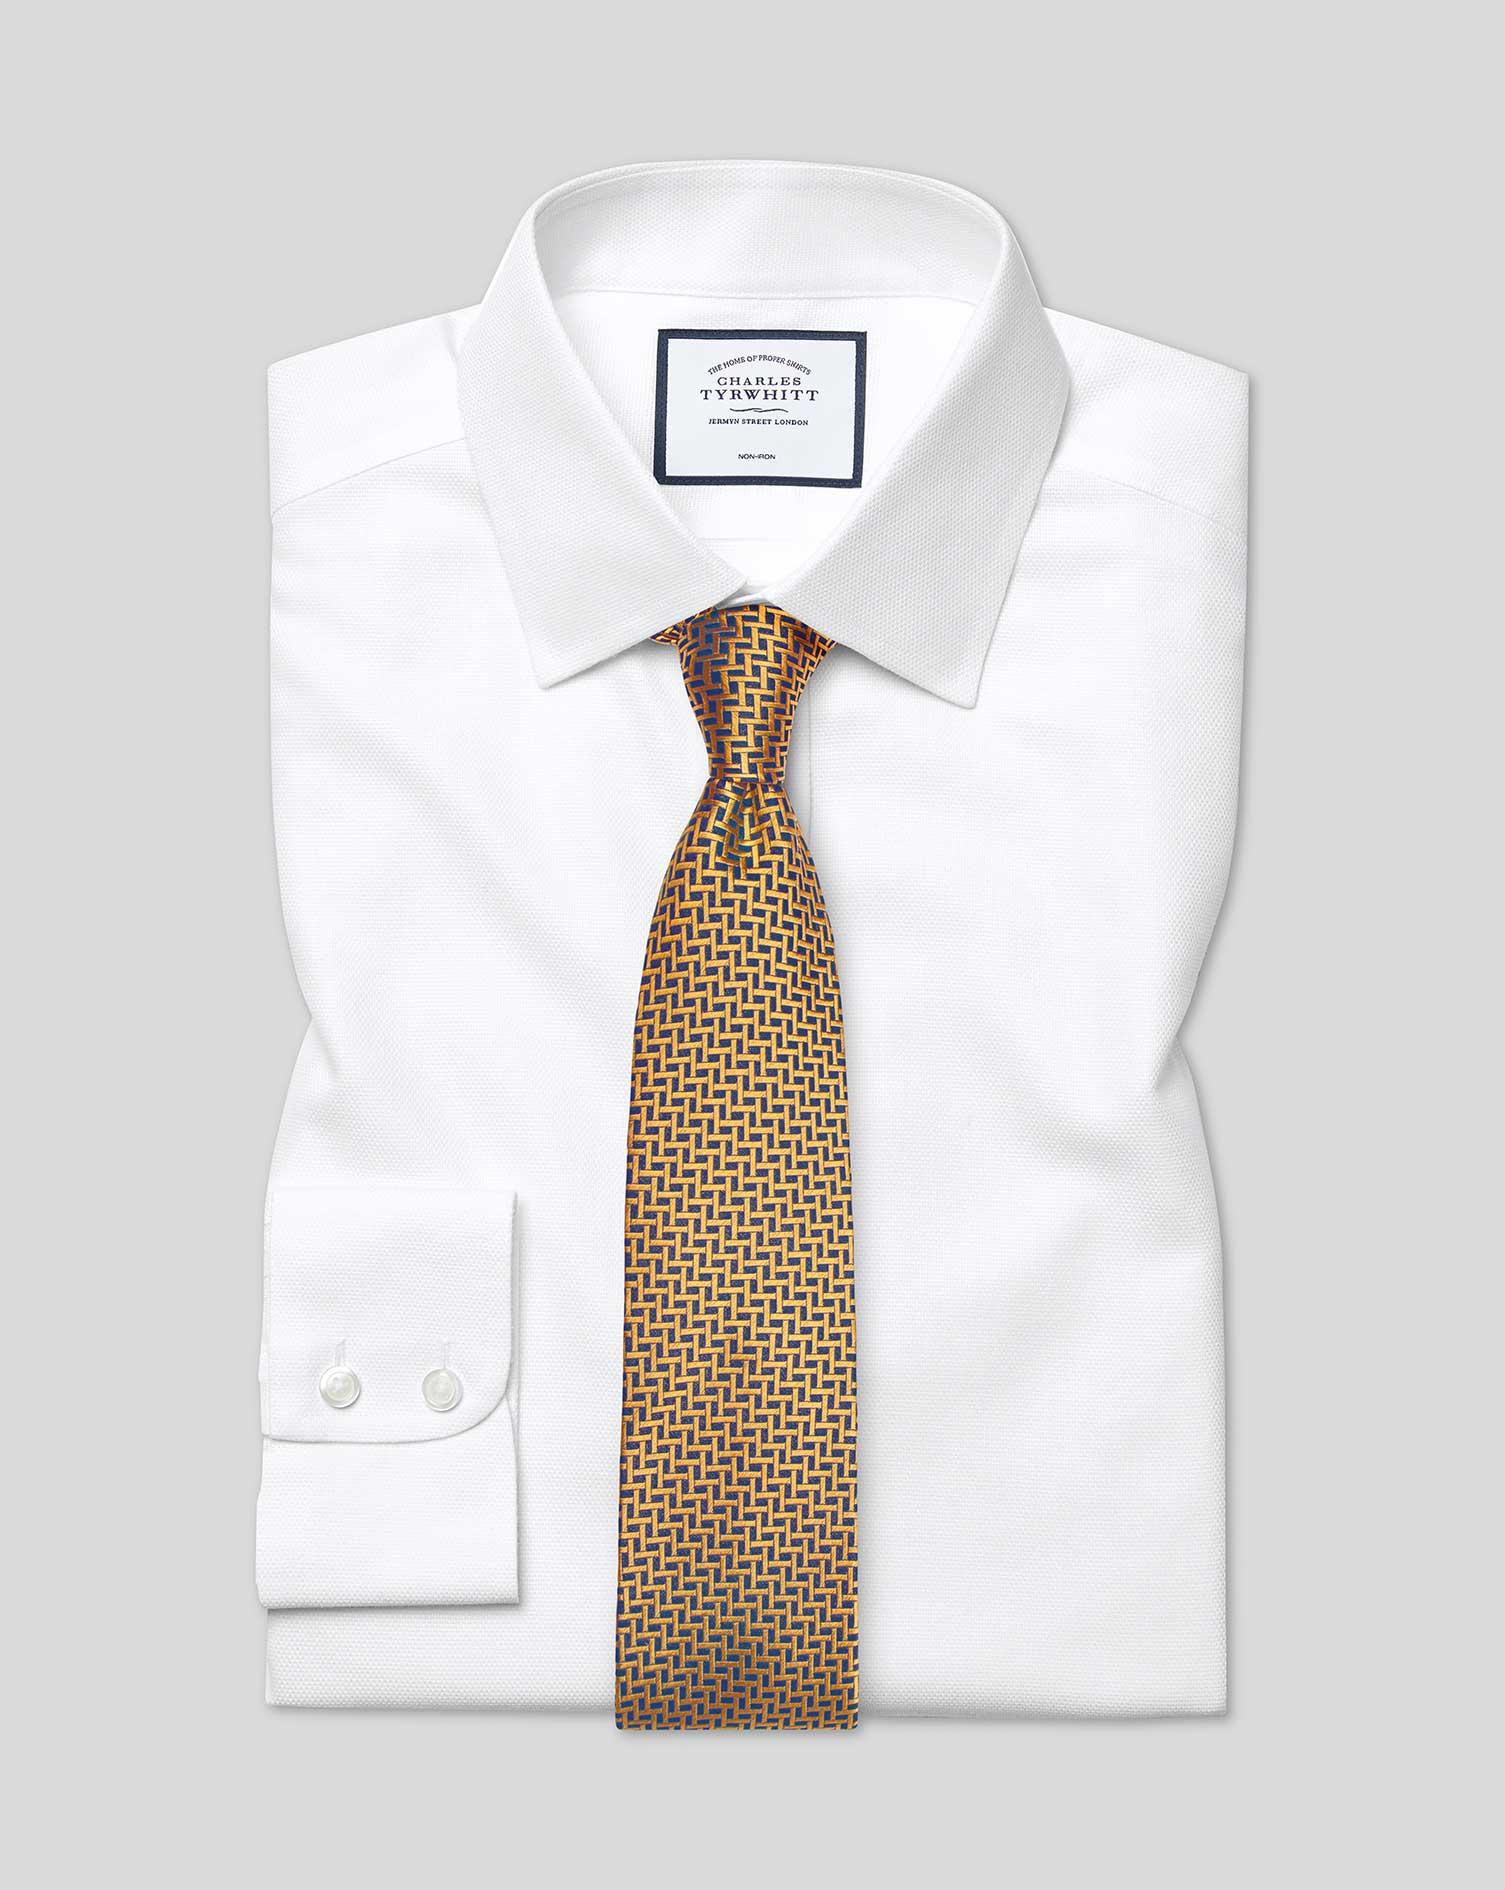 Slim Fit Non-Iron Dash Weave White Cotton Formal Shirt Single Cuff Size 15.5/35 by Charles Tyrwhitt